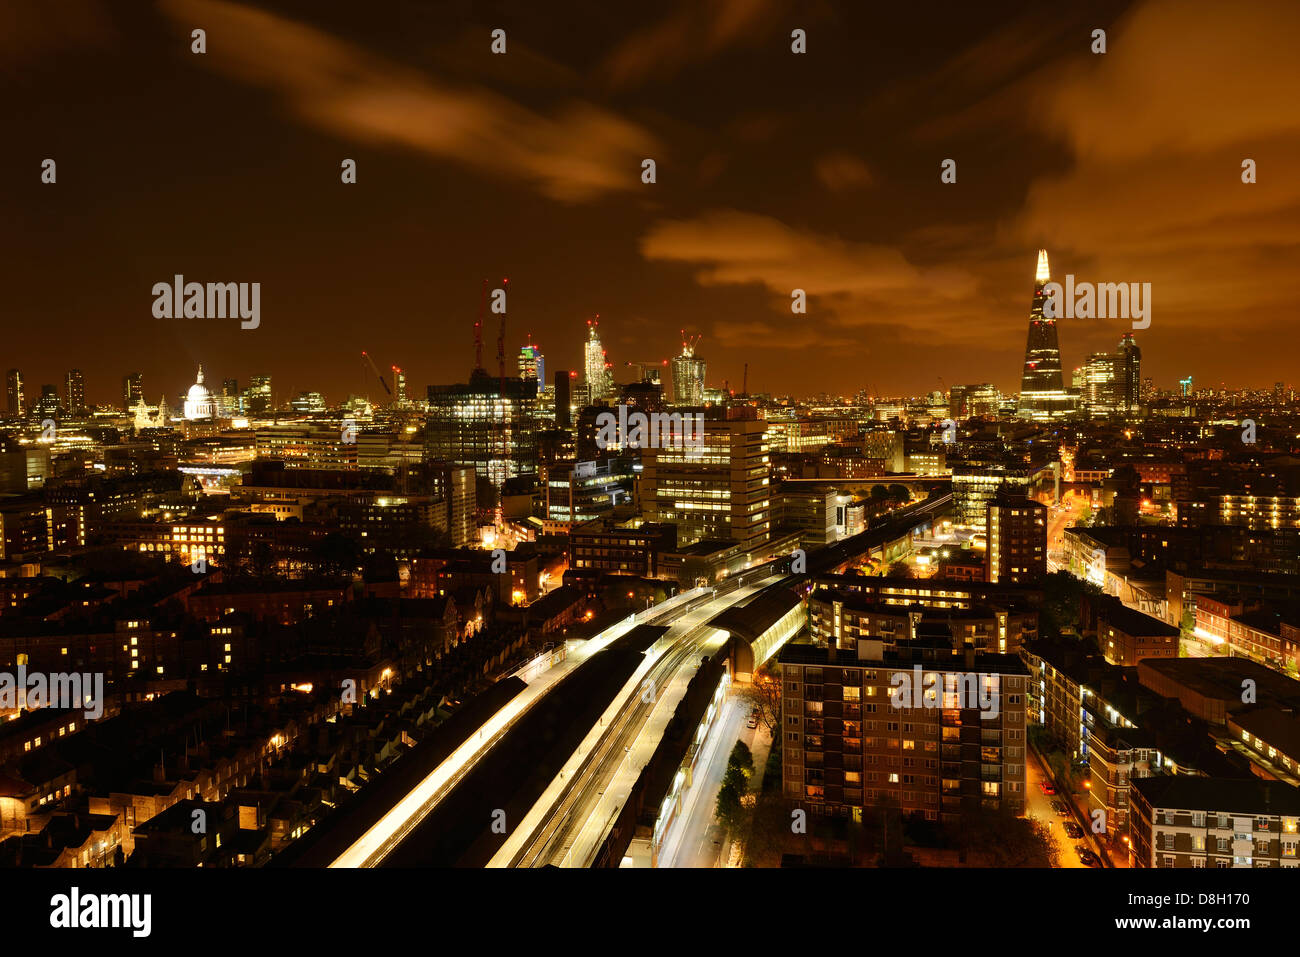 London Aerial Night View From Waterloo Station Towards the City. London, England, United Kingdom. - Stock Image